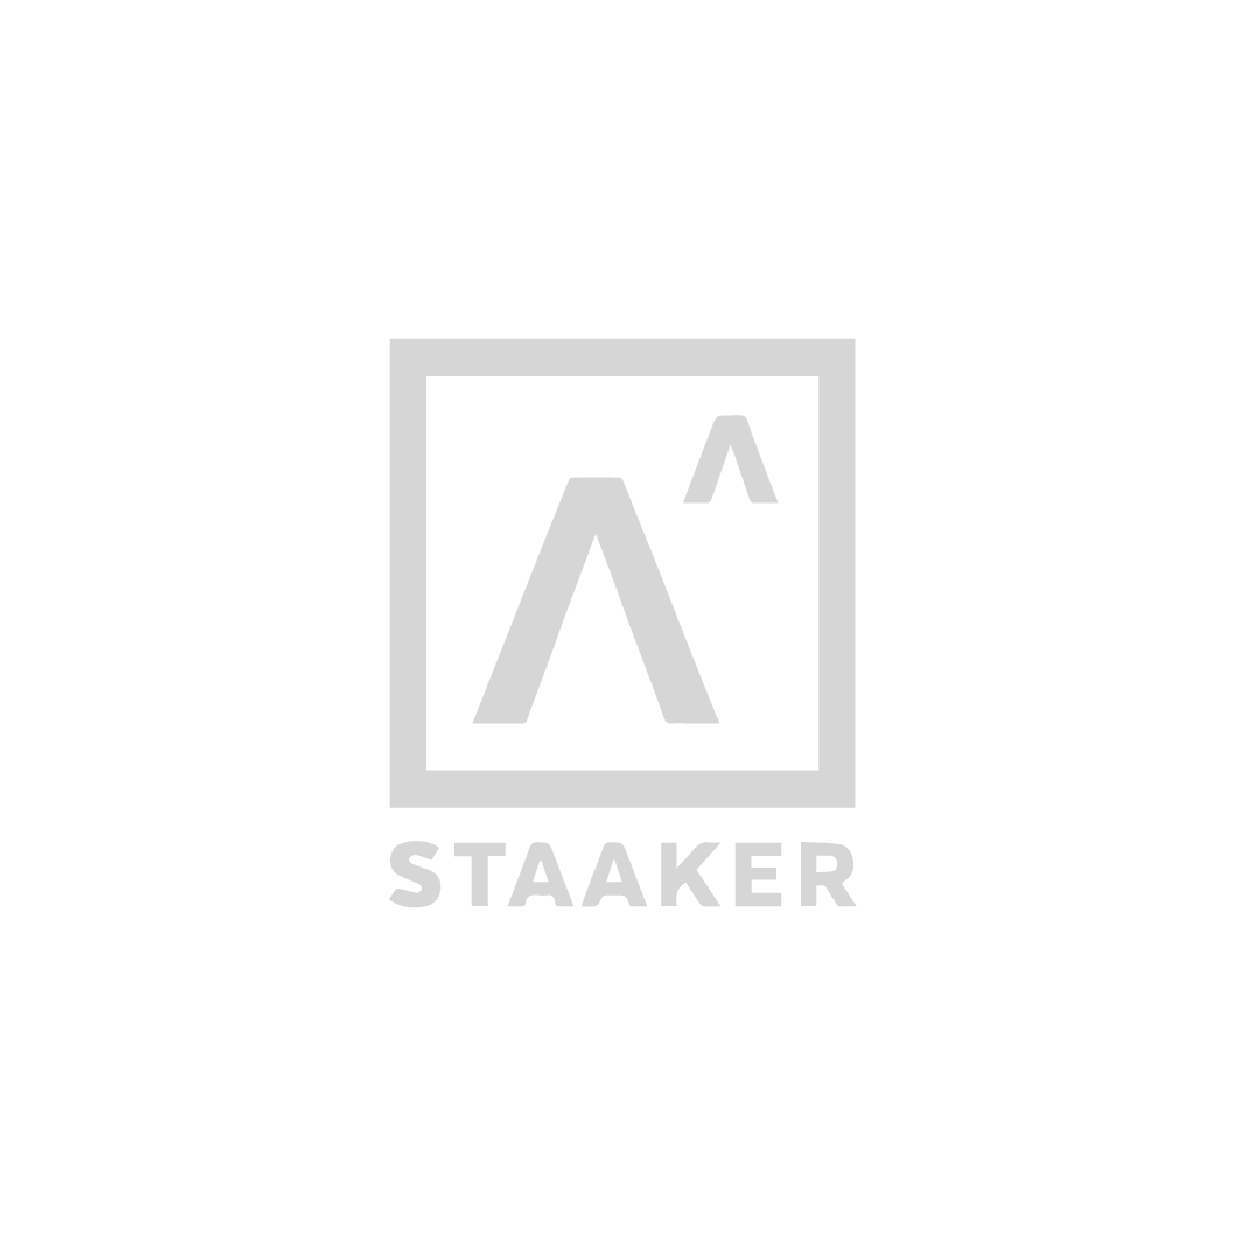 Grayscale_Client_Logo_Staaker-01.png